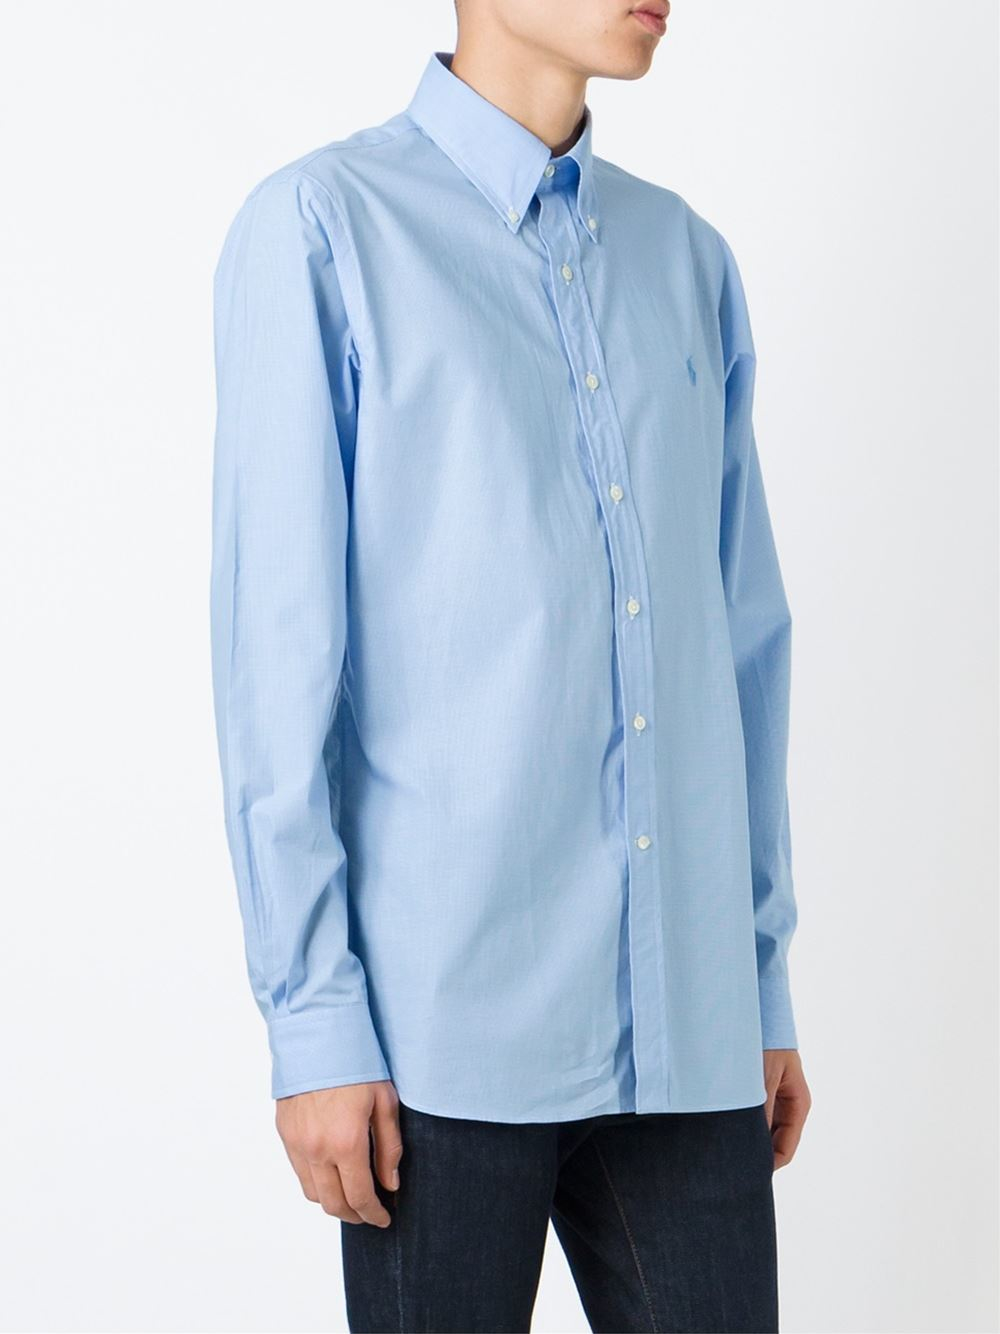 Polo Ralph Lauren Classic Button Down Shirt In Blue For